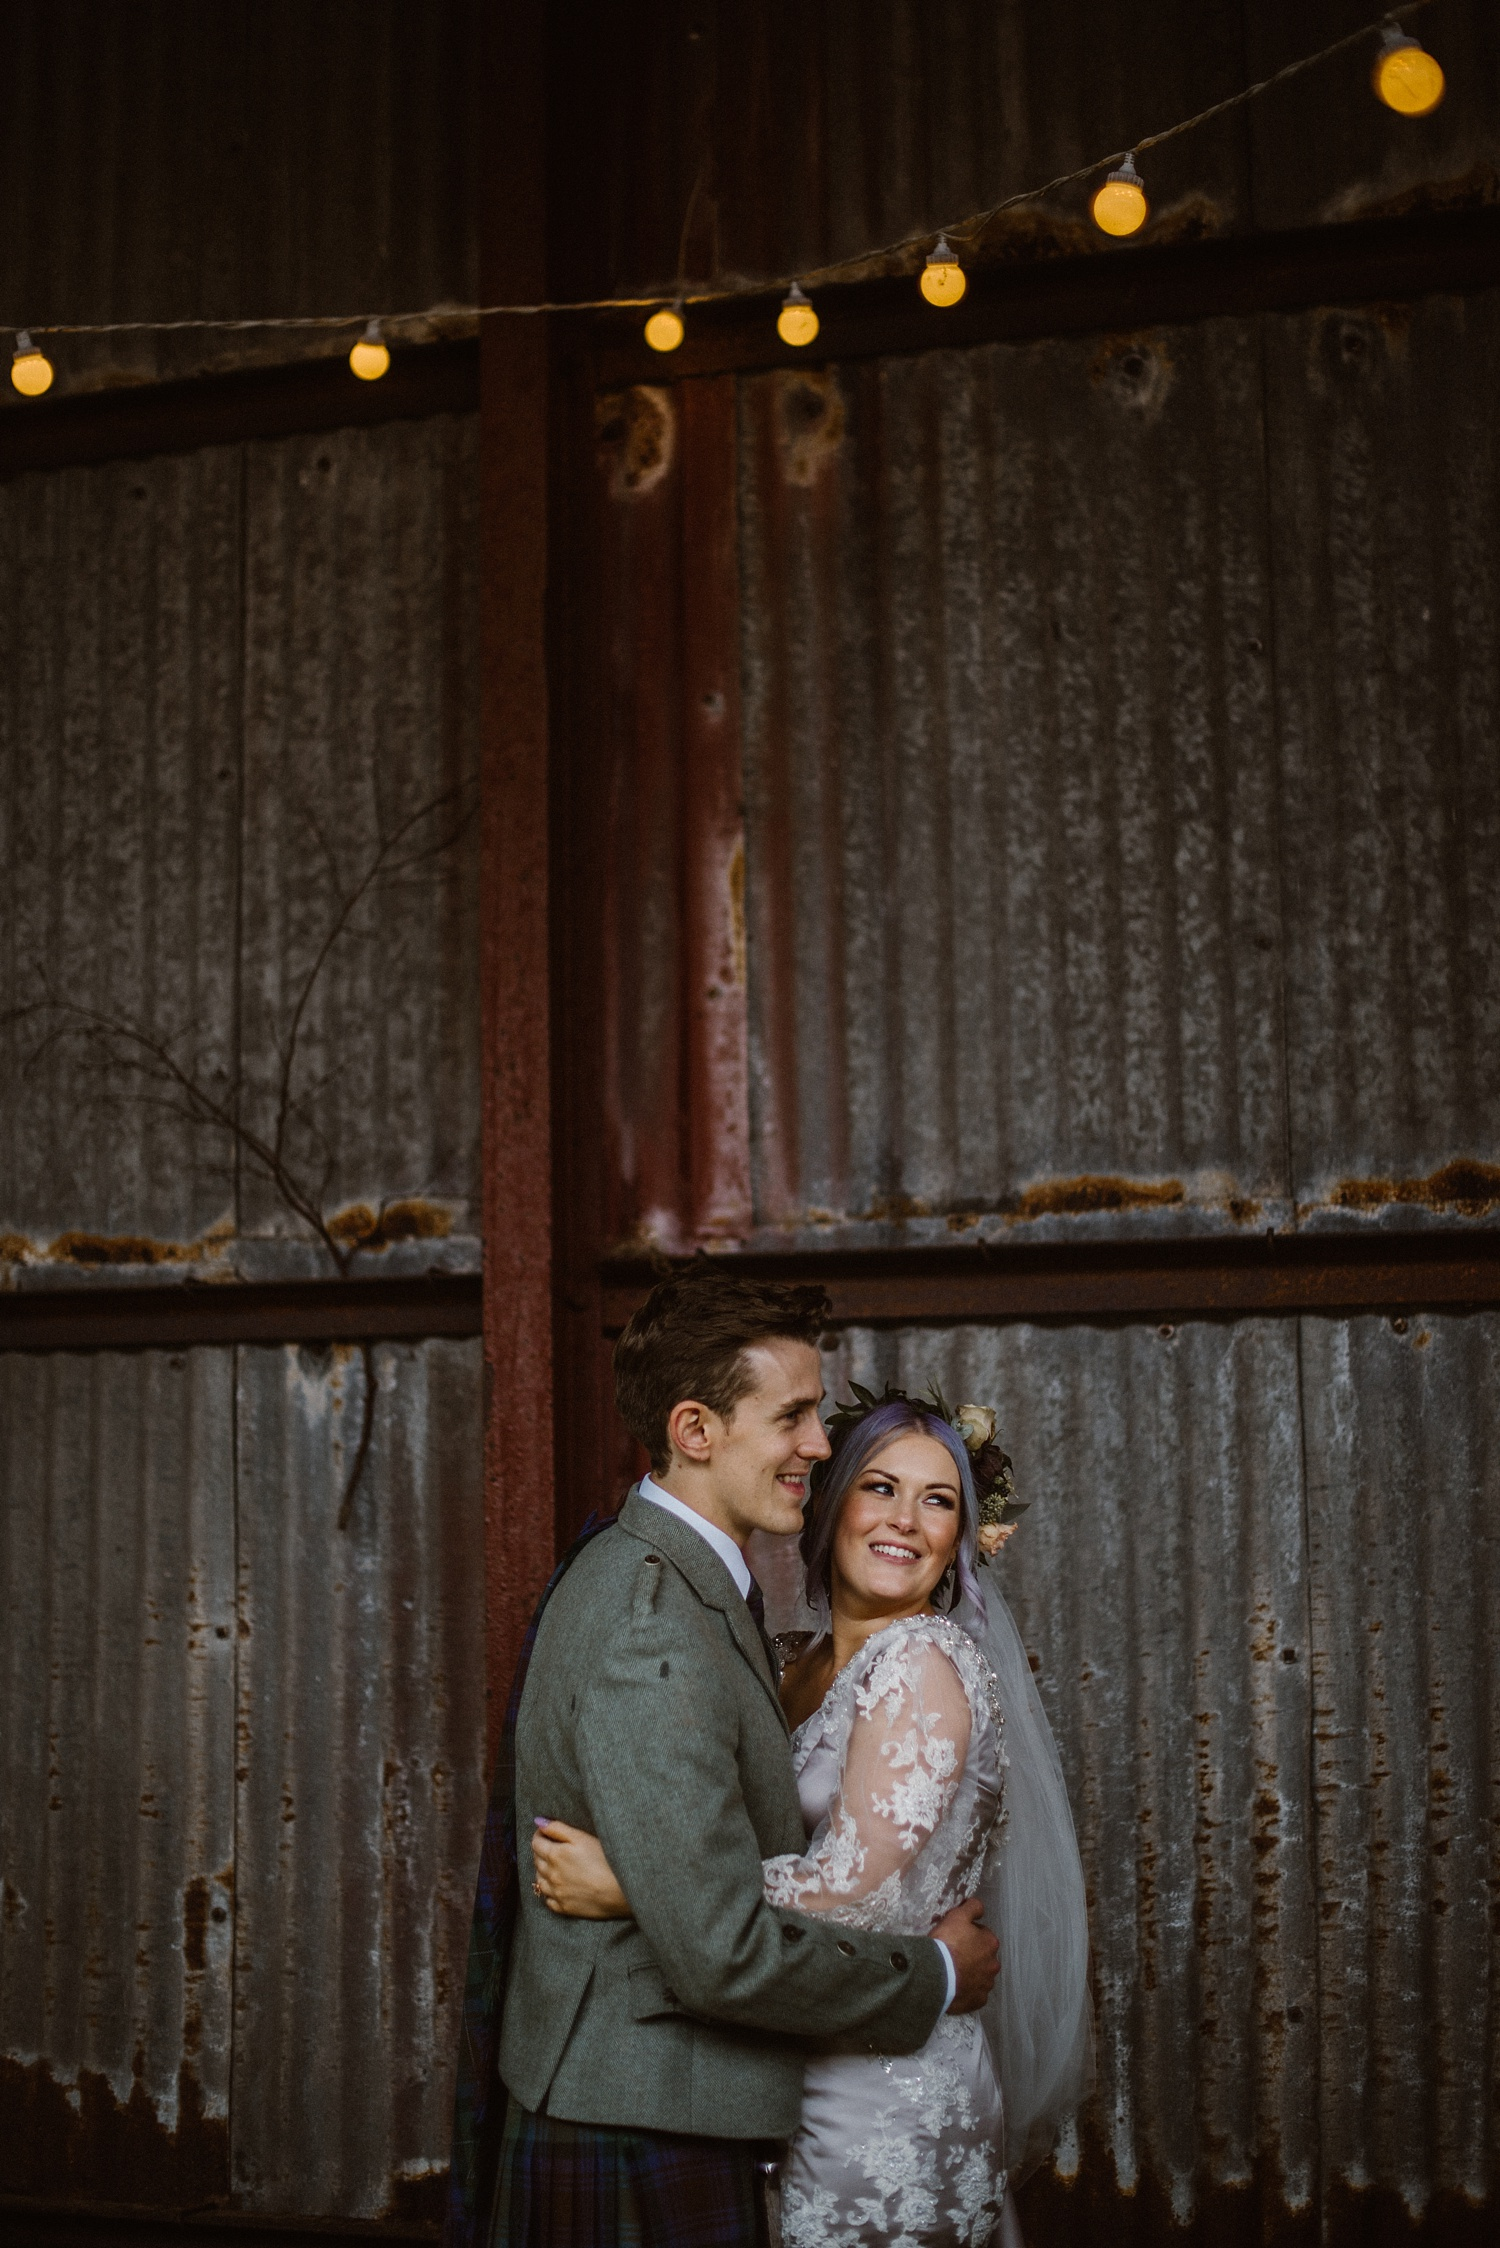 Edinburgh-wedding-photographer-Claire-Fleck_112.jpg